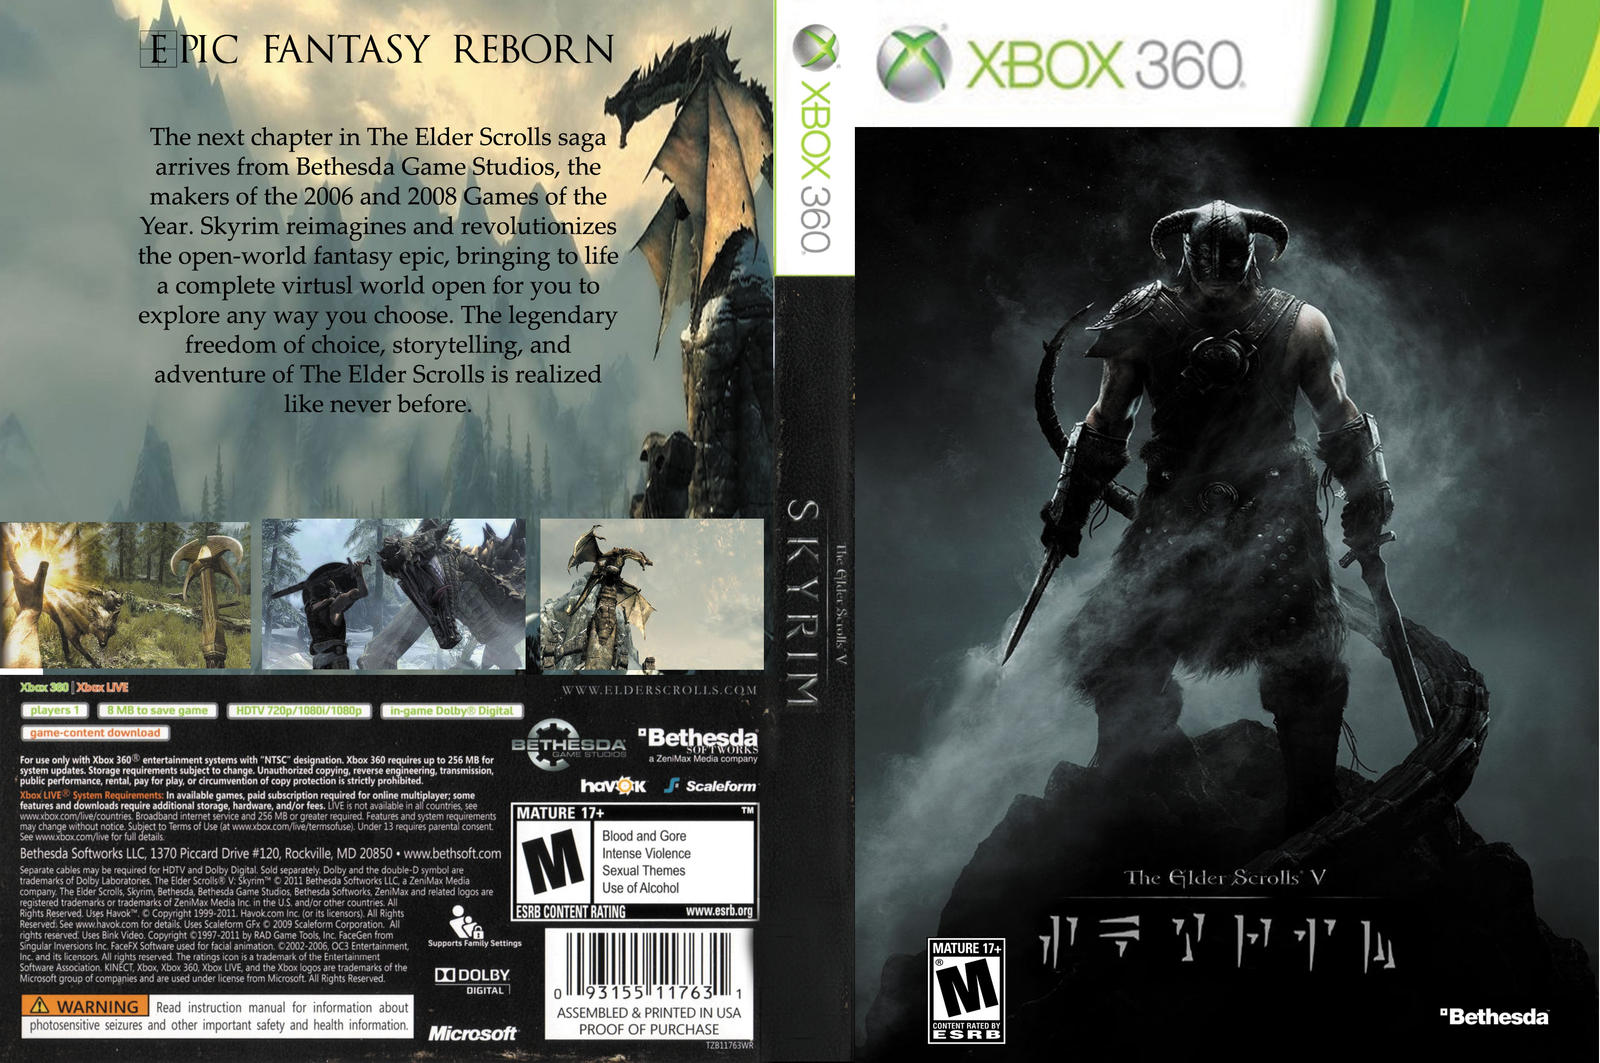 Custom Skyrim Game Case  Xbox 360  by TophatBrony64Xbox 360 Game Case 2013